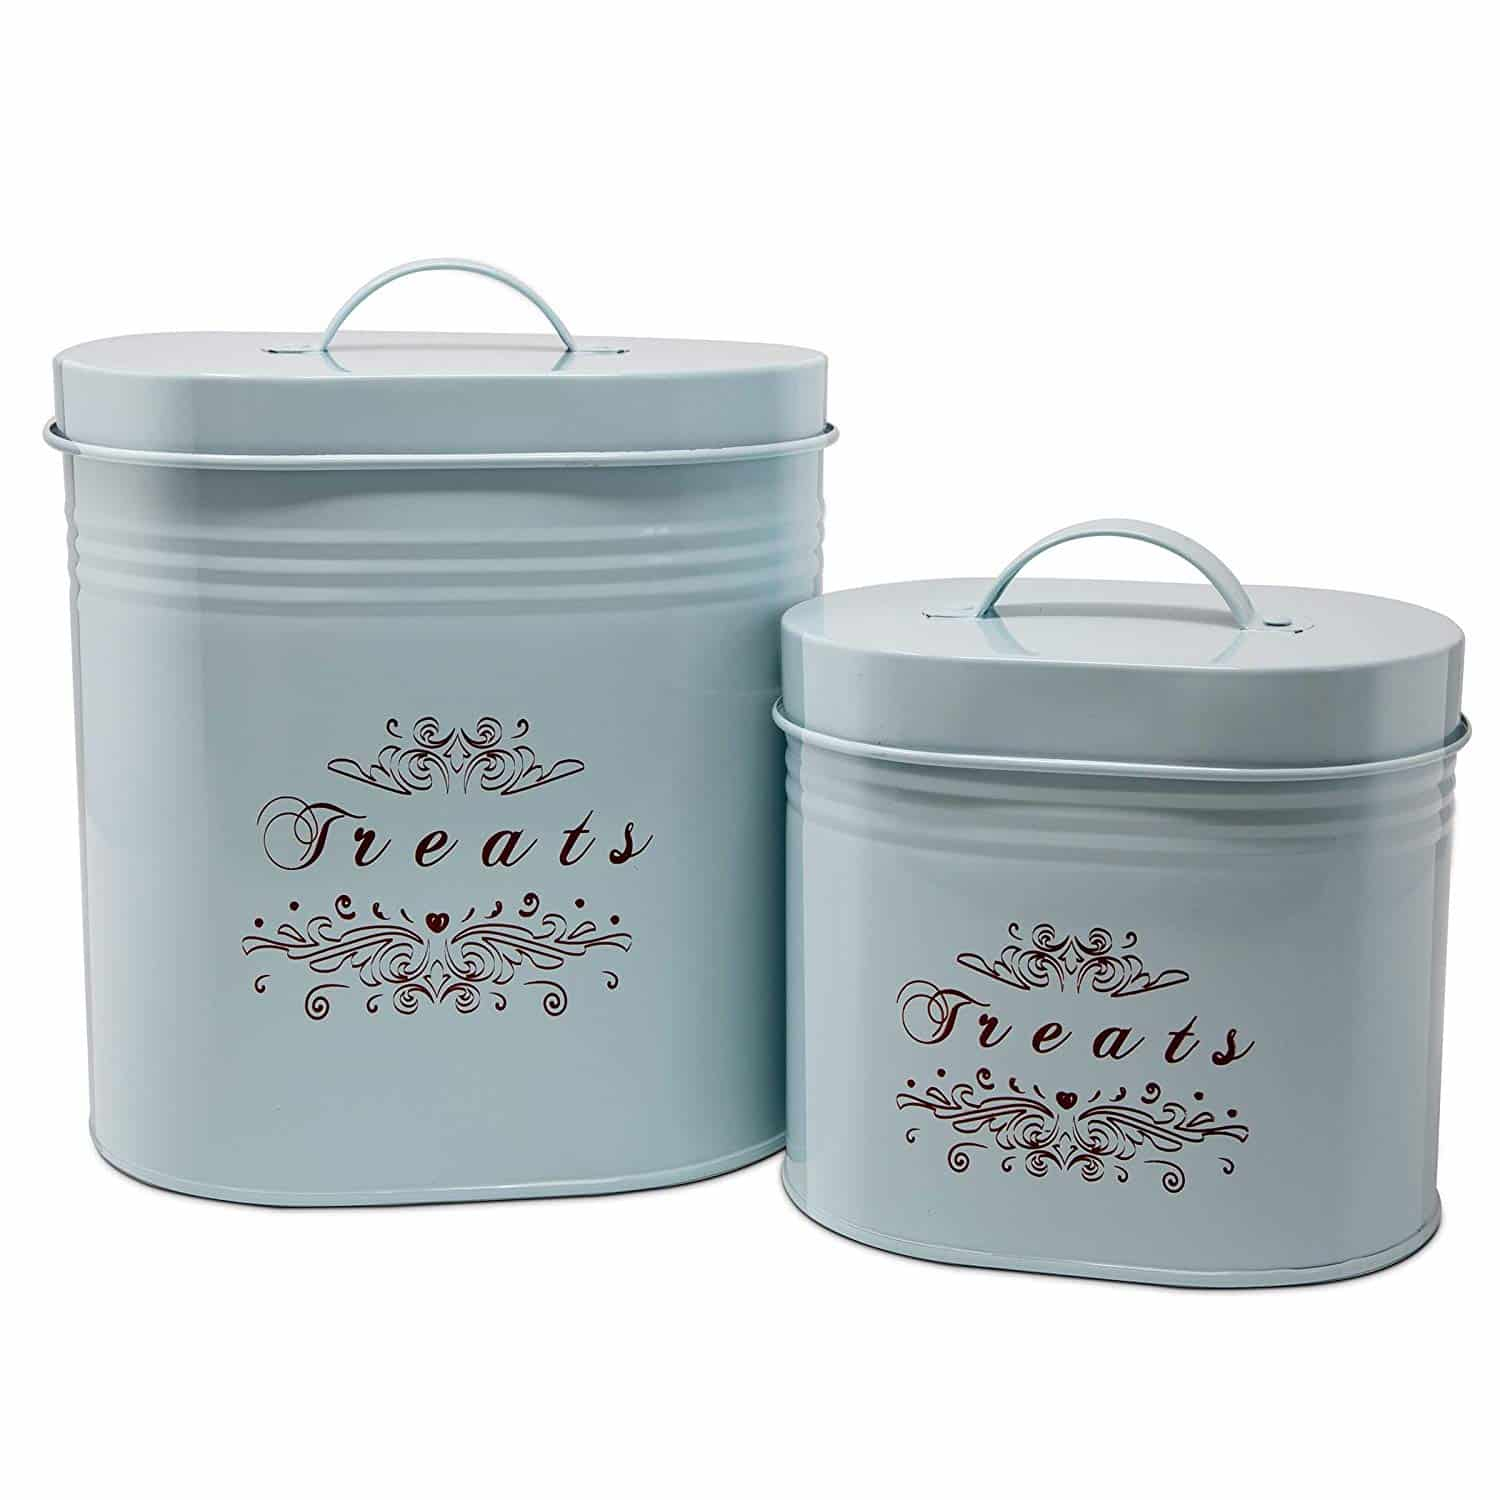 One-for-Pets Treats Canister Set